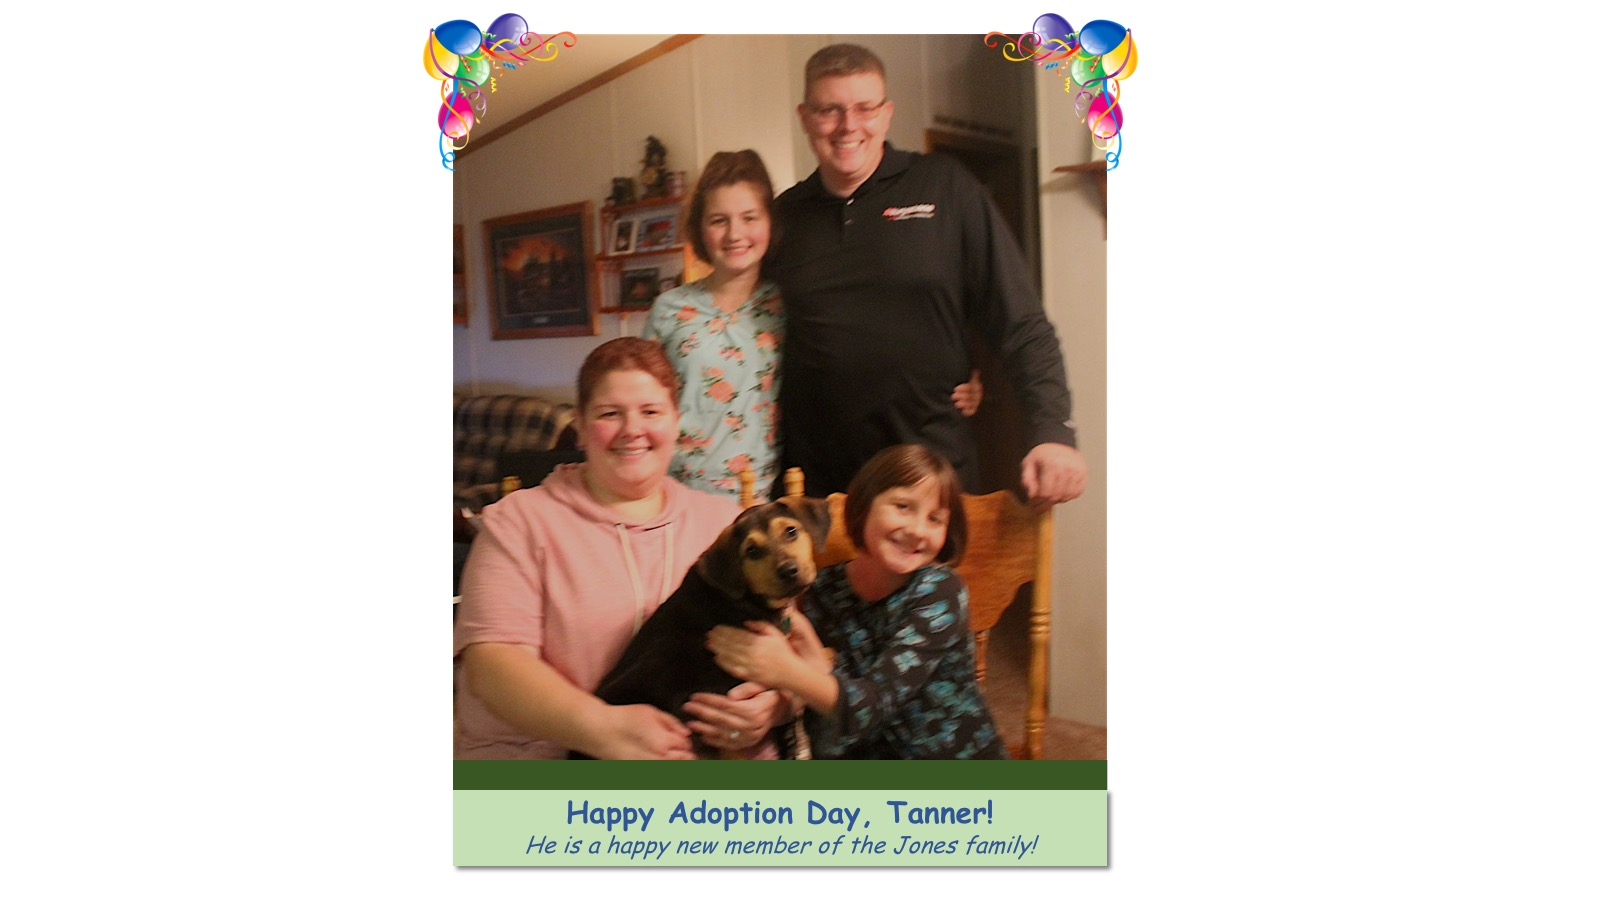 Tanner_Adoption_Photo_2018.jpg